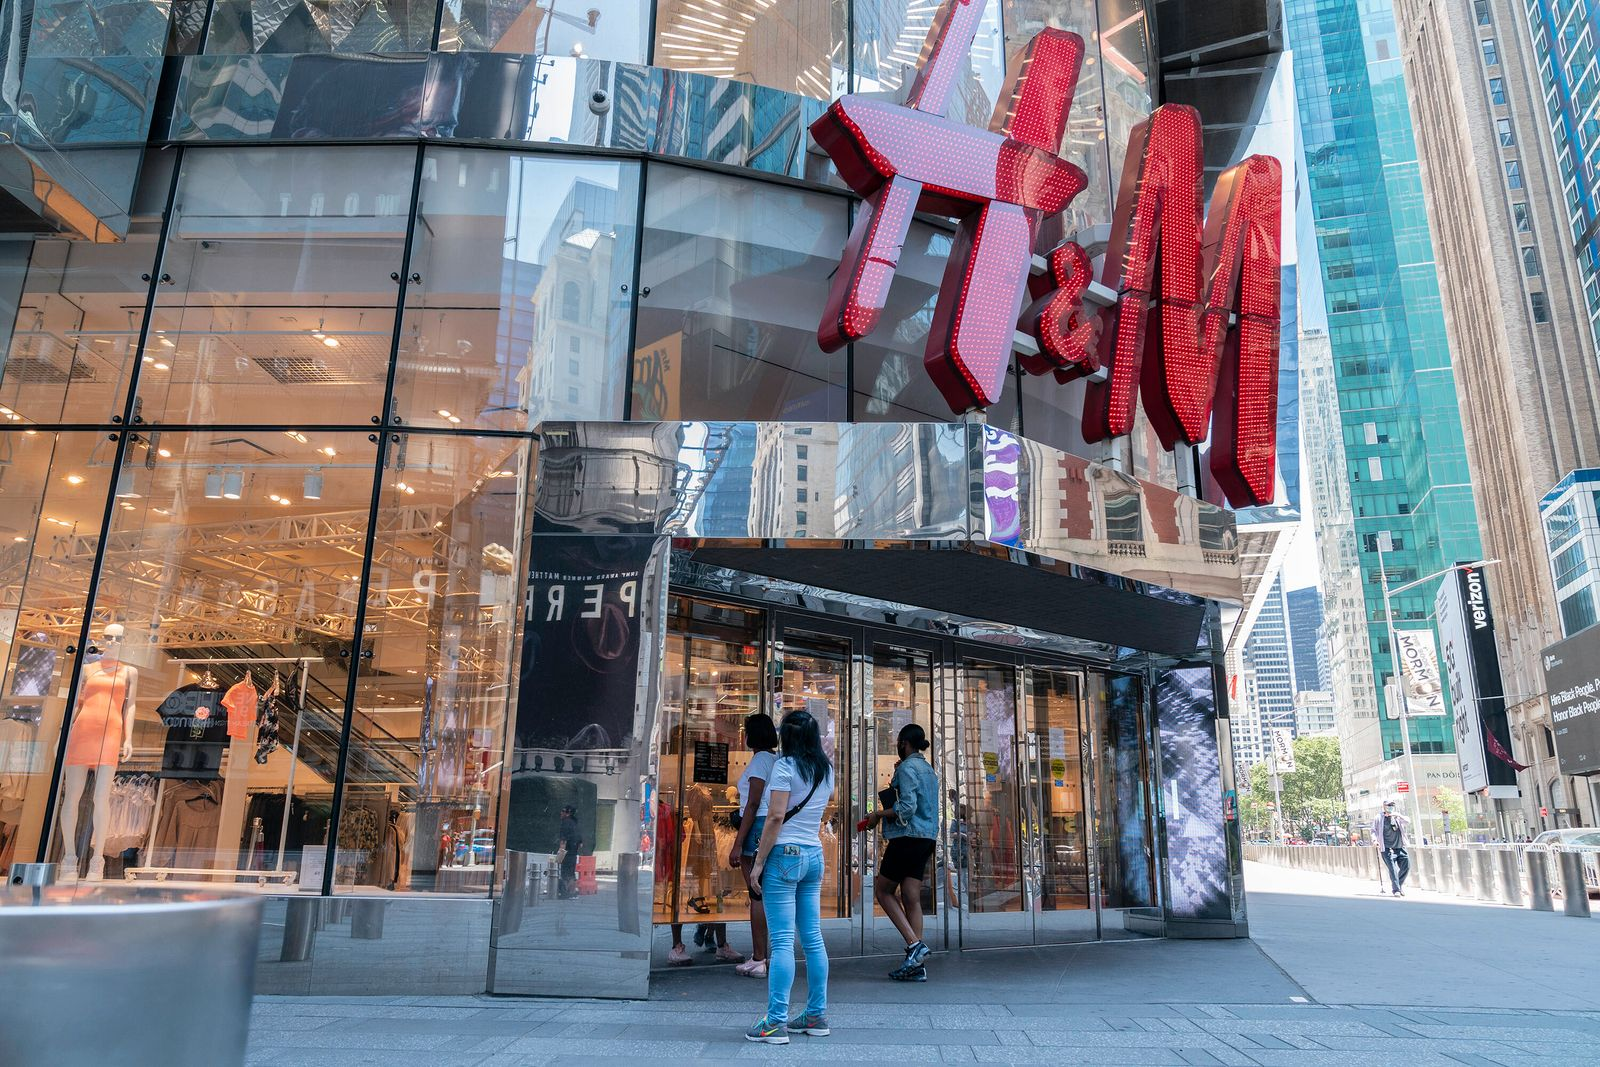 NYC restaurants, retail stores on Phase 2 reopen Retail stores start to serve customers indoors as New York City enters